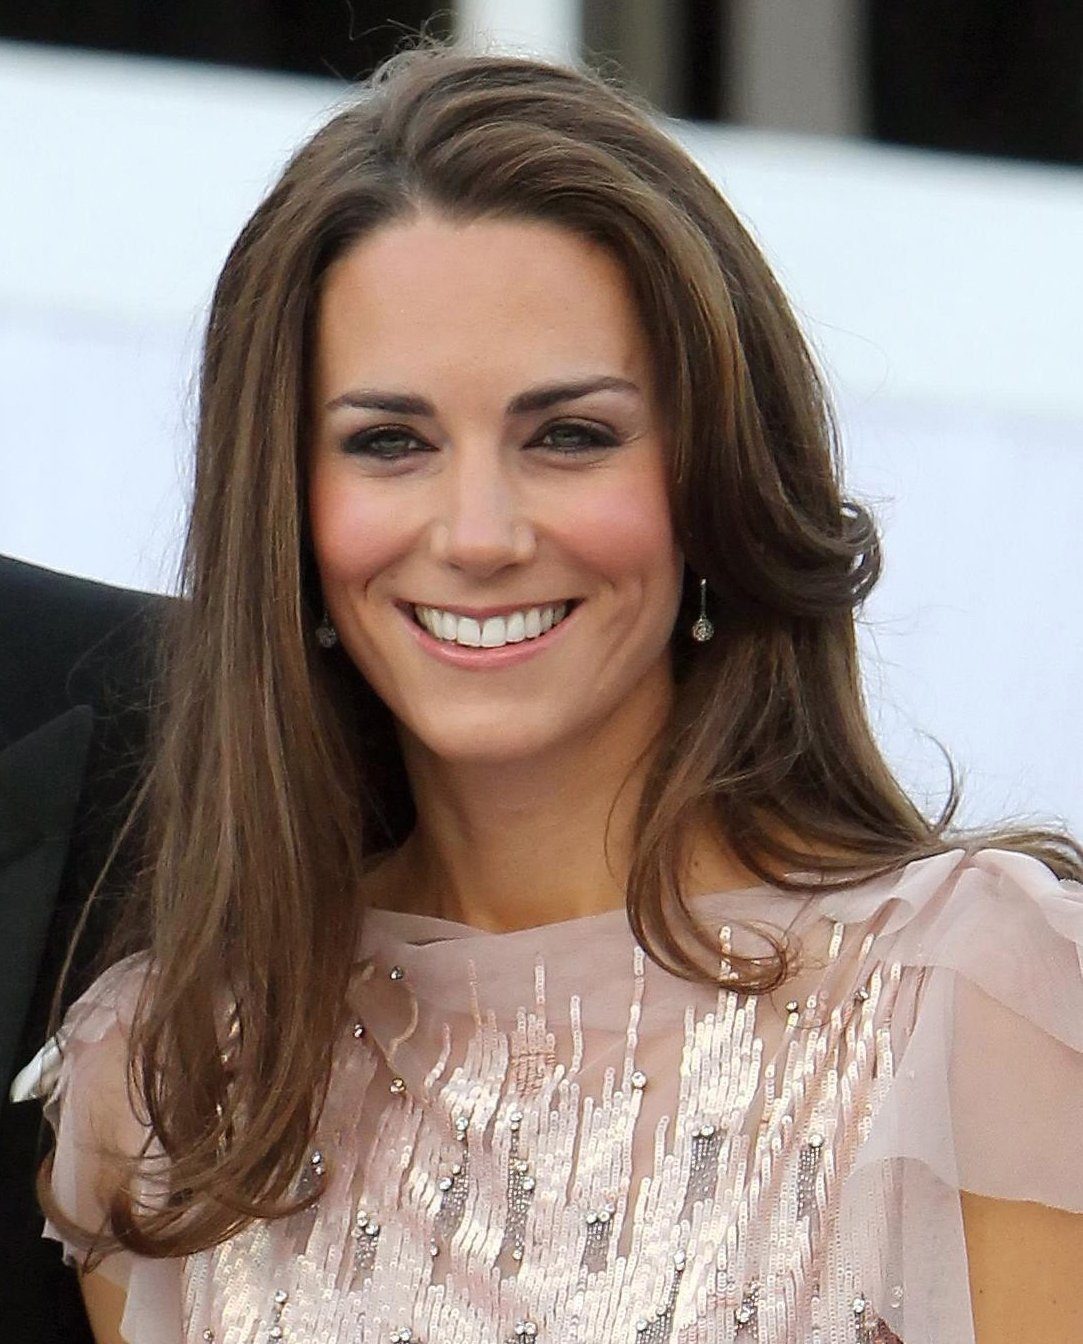 Kate Middleton will tonight attend the prestigious BBC Sports Personality of the Year Awards